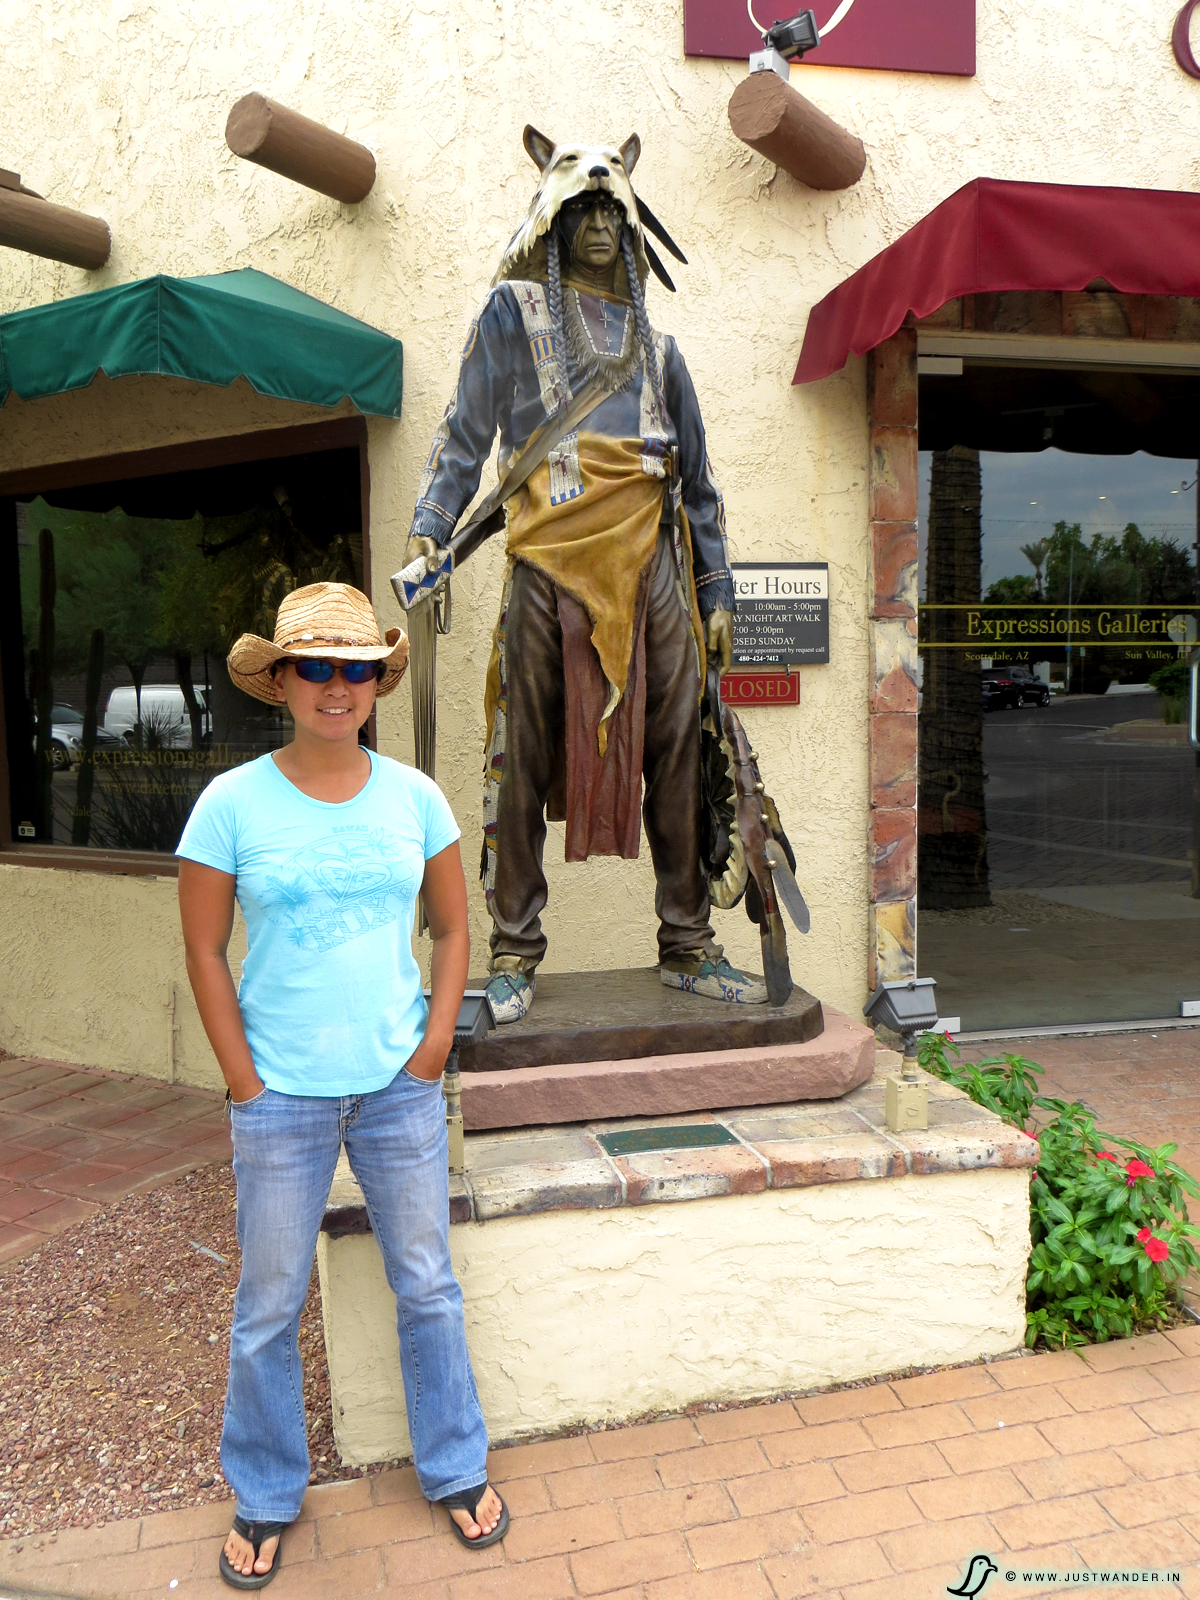 PIC: Old Town Scottsdale Arizona - Native American Statue